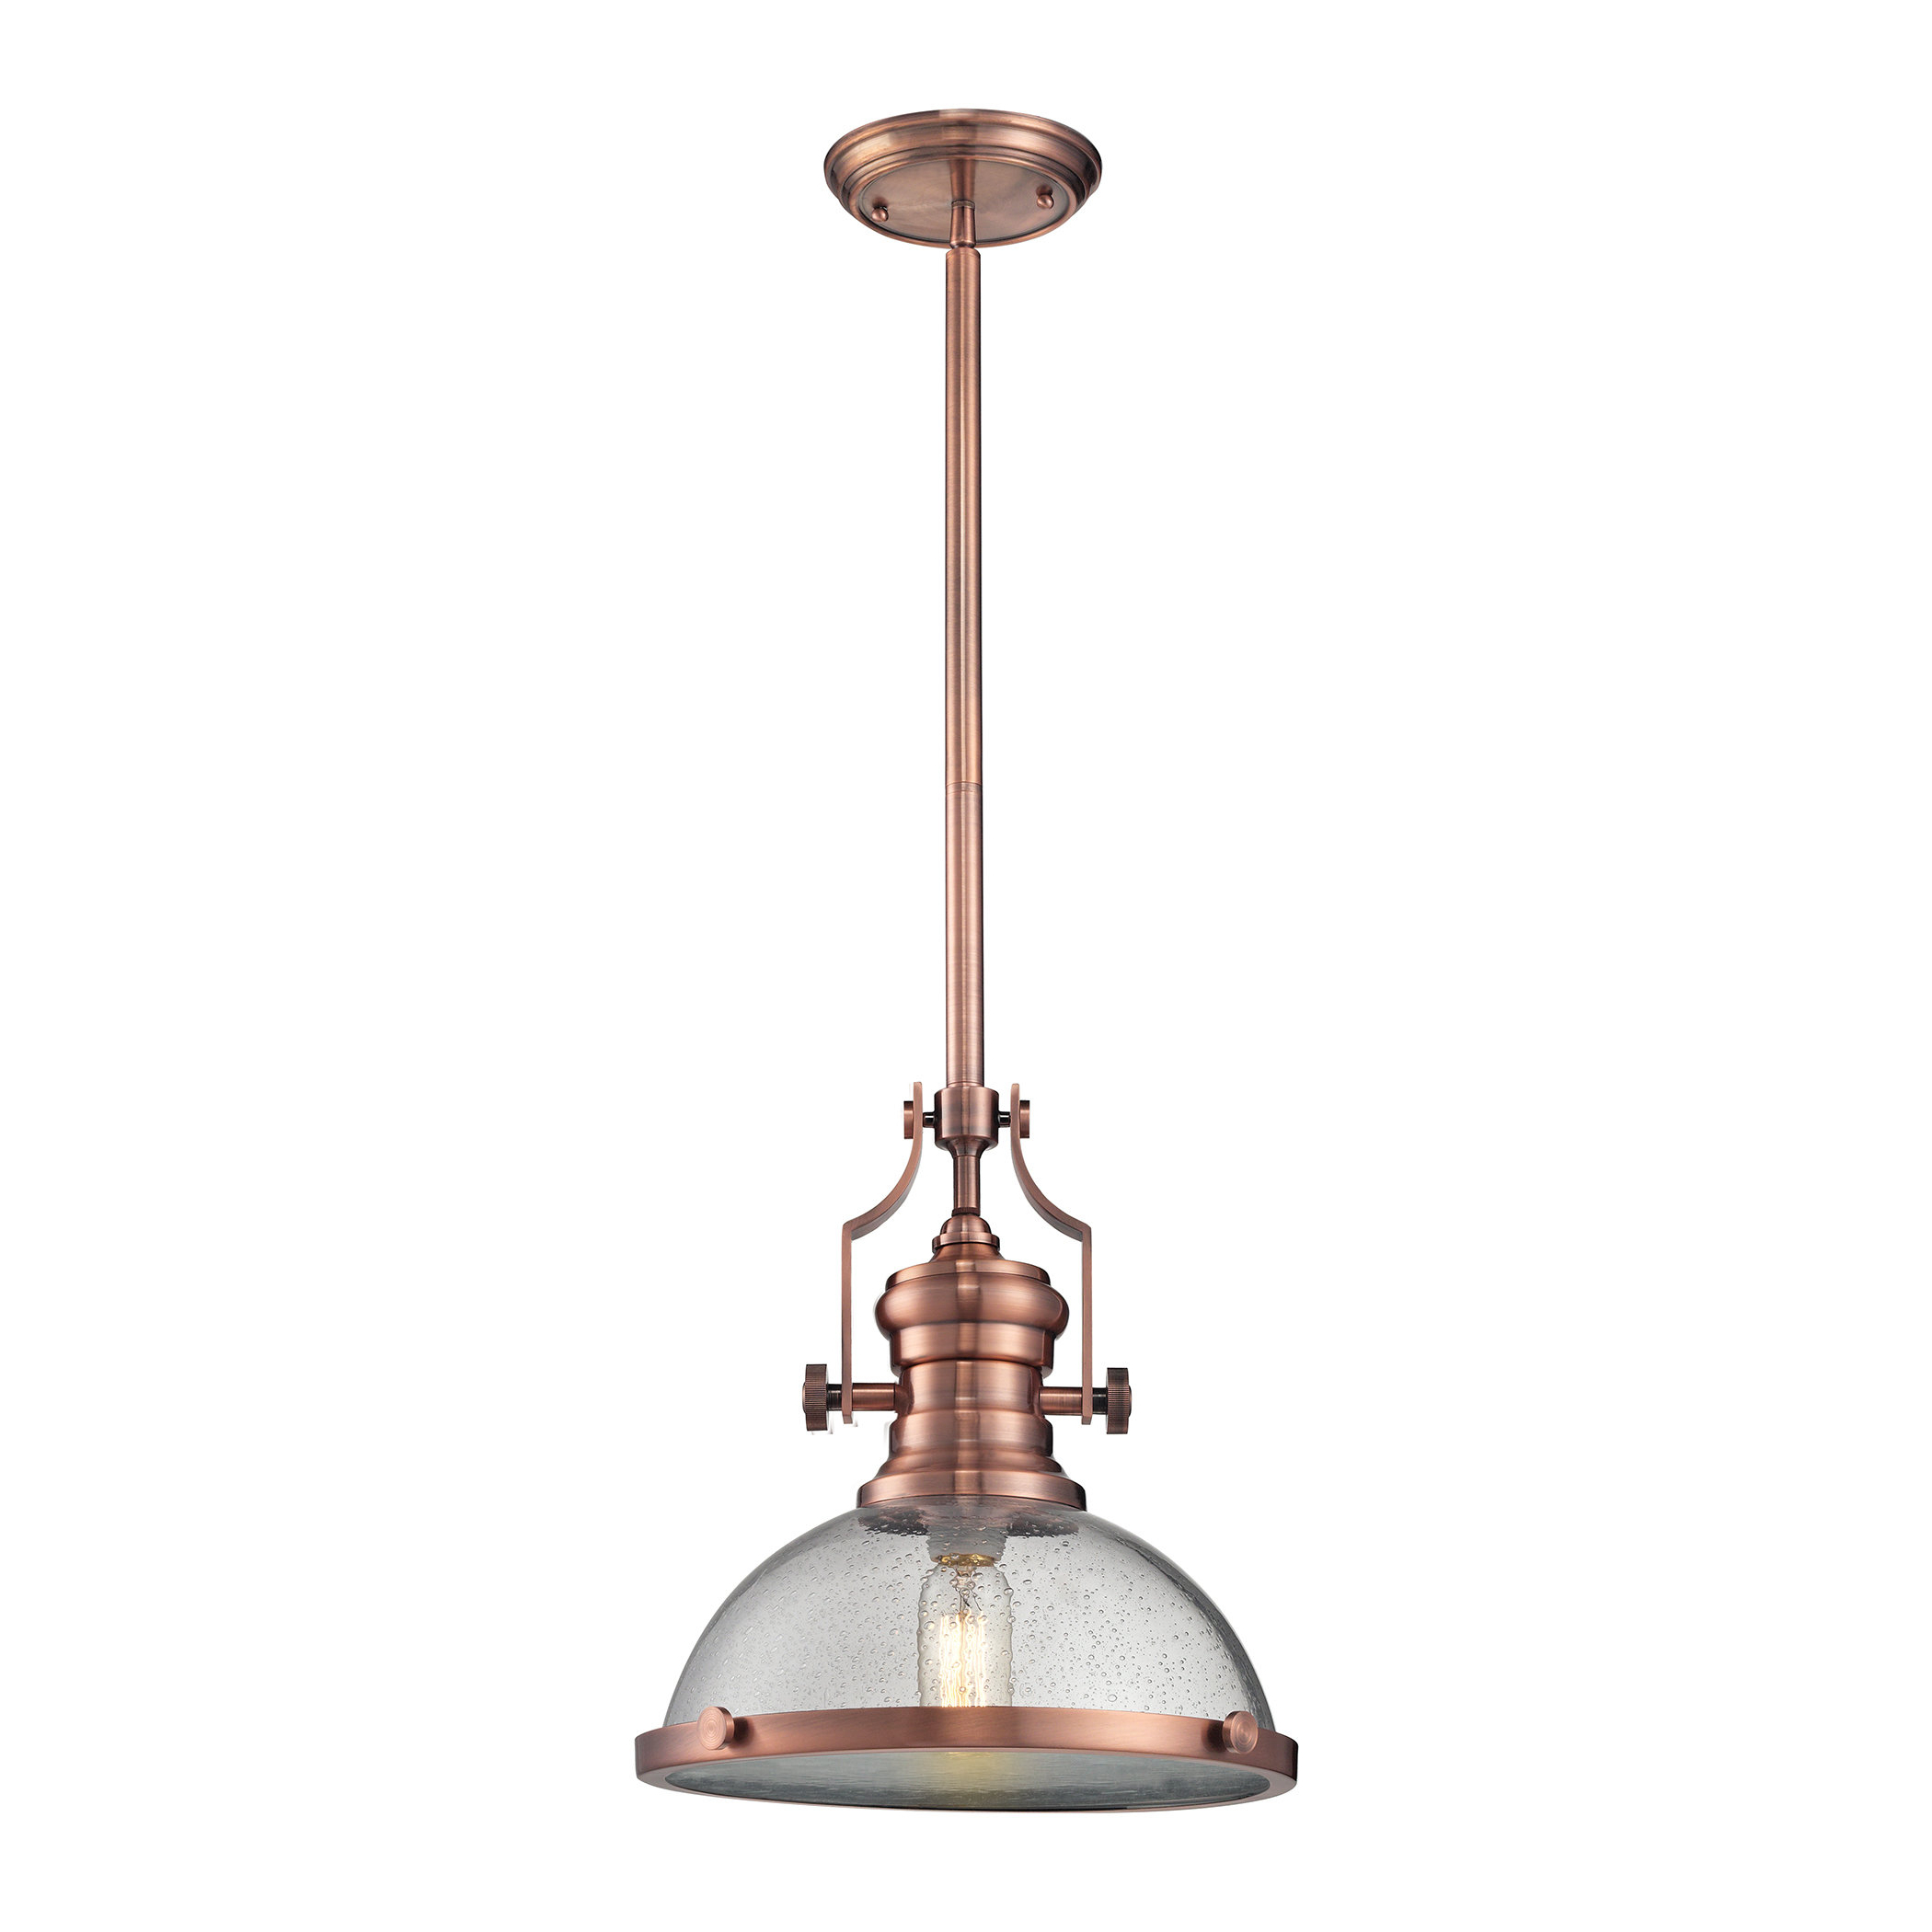 Well Liked Priston 1 Light Single Dome Pendant Within Erico 1 Light Single Bell Pendants (View 13 of 25)